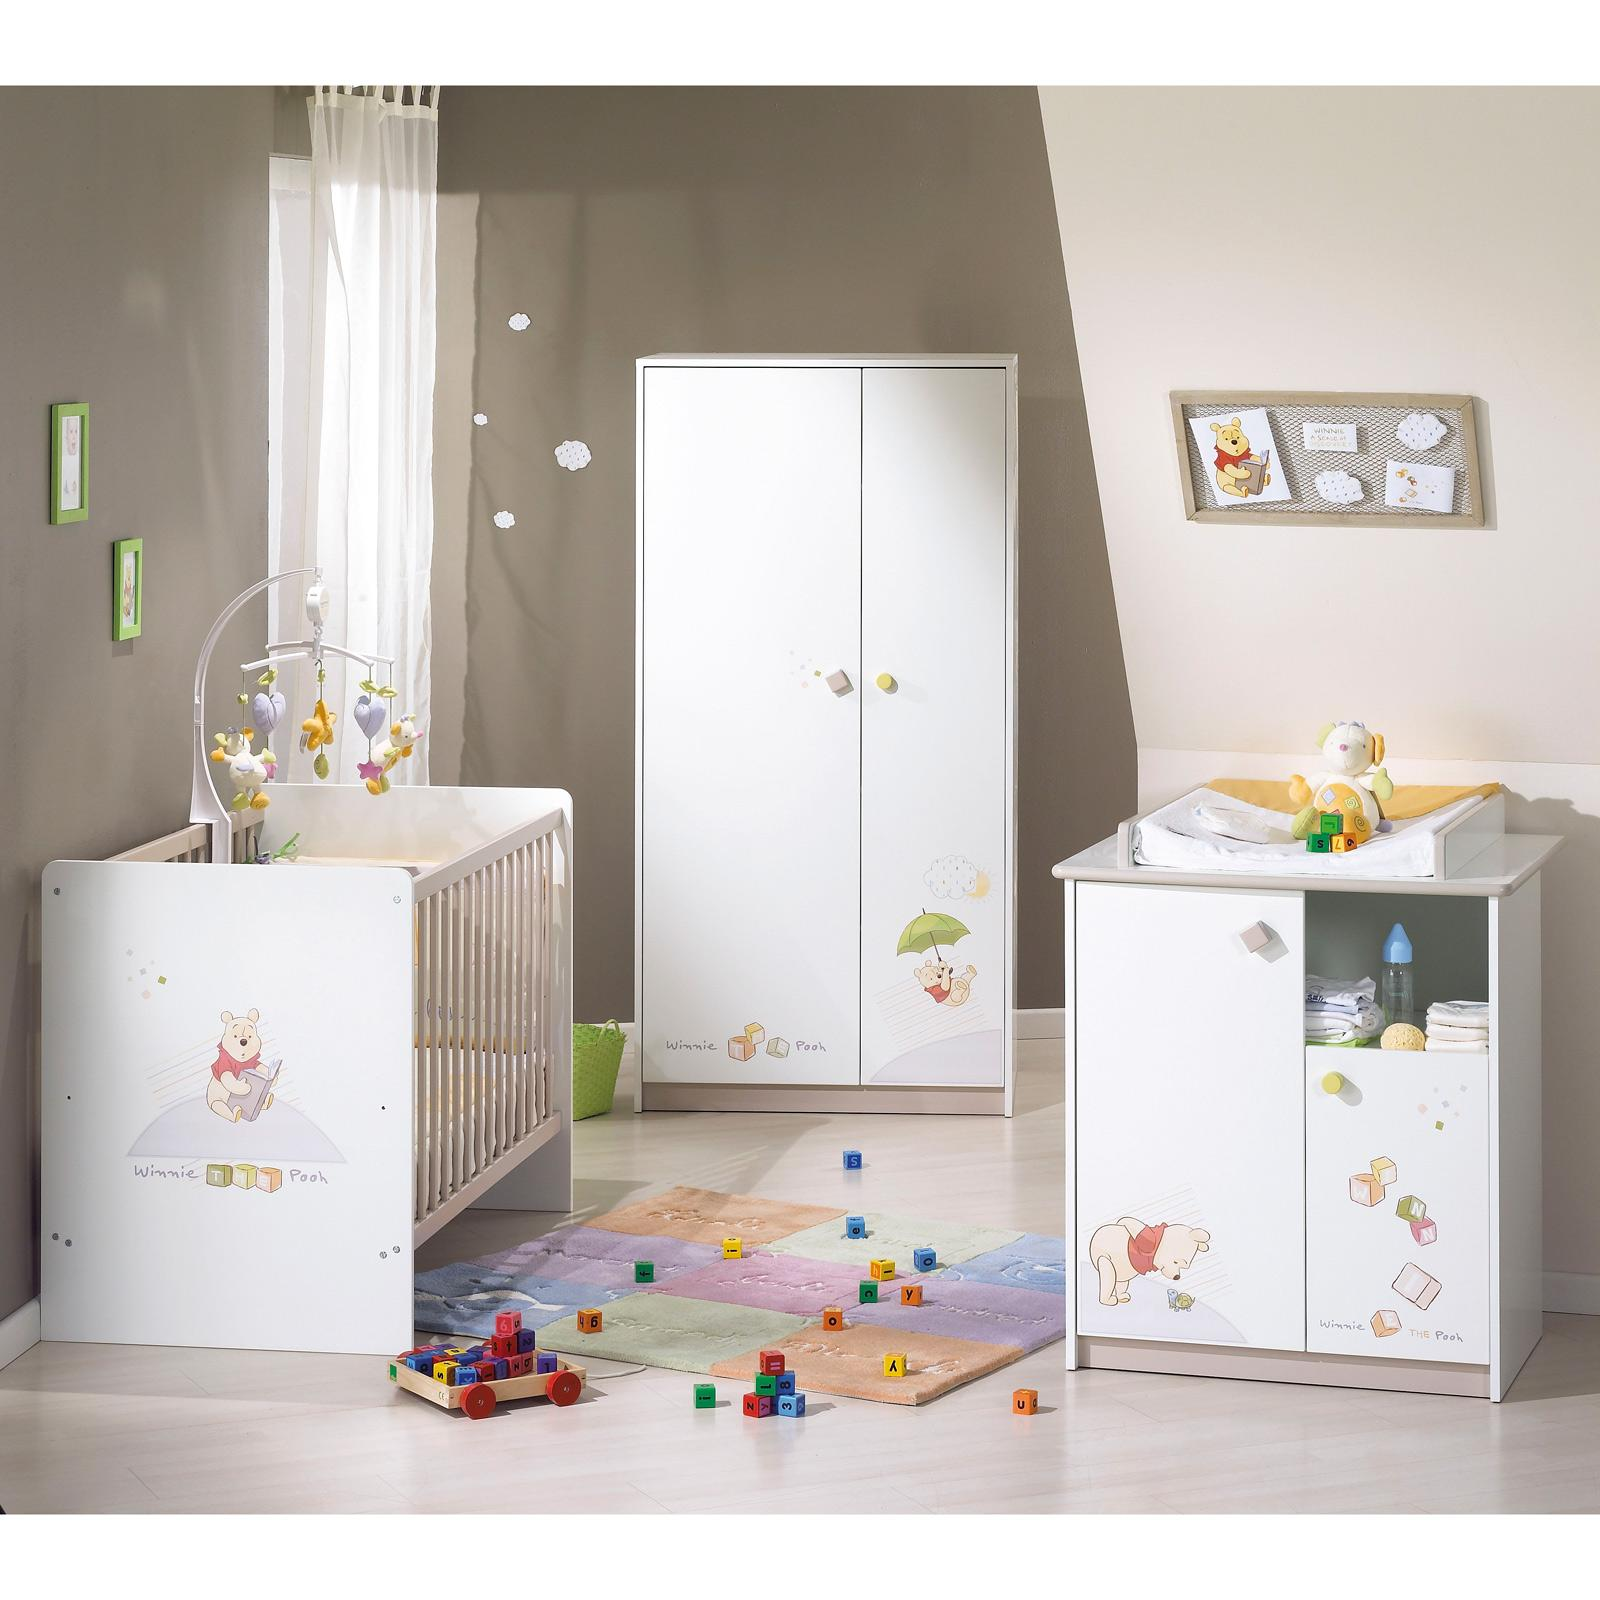 Decoration de chambre bebe winnie l ourson for Chambre complete bebe conforama